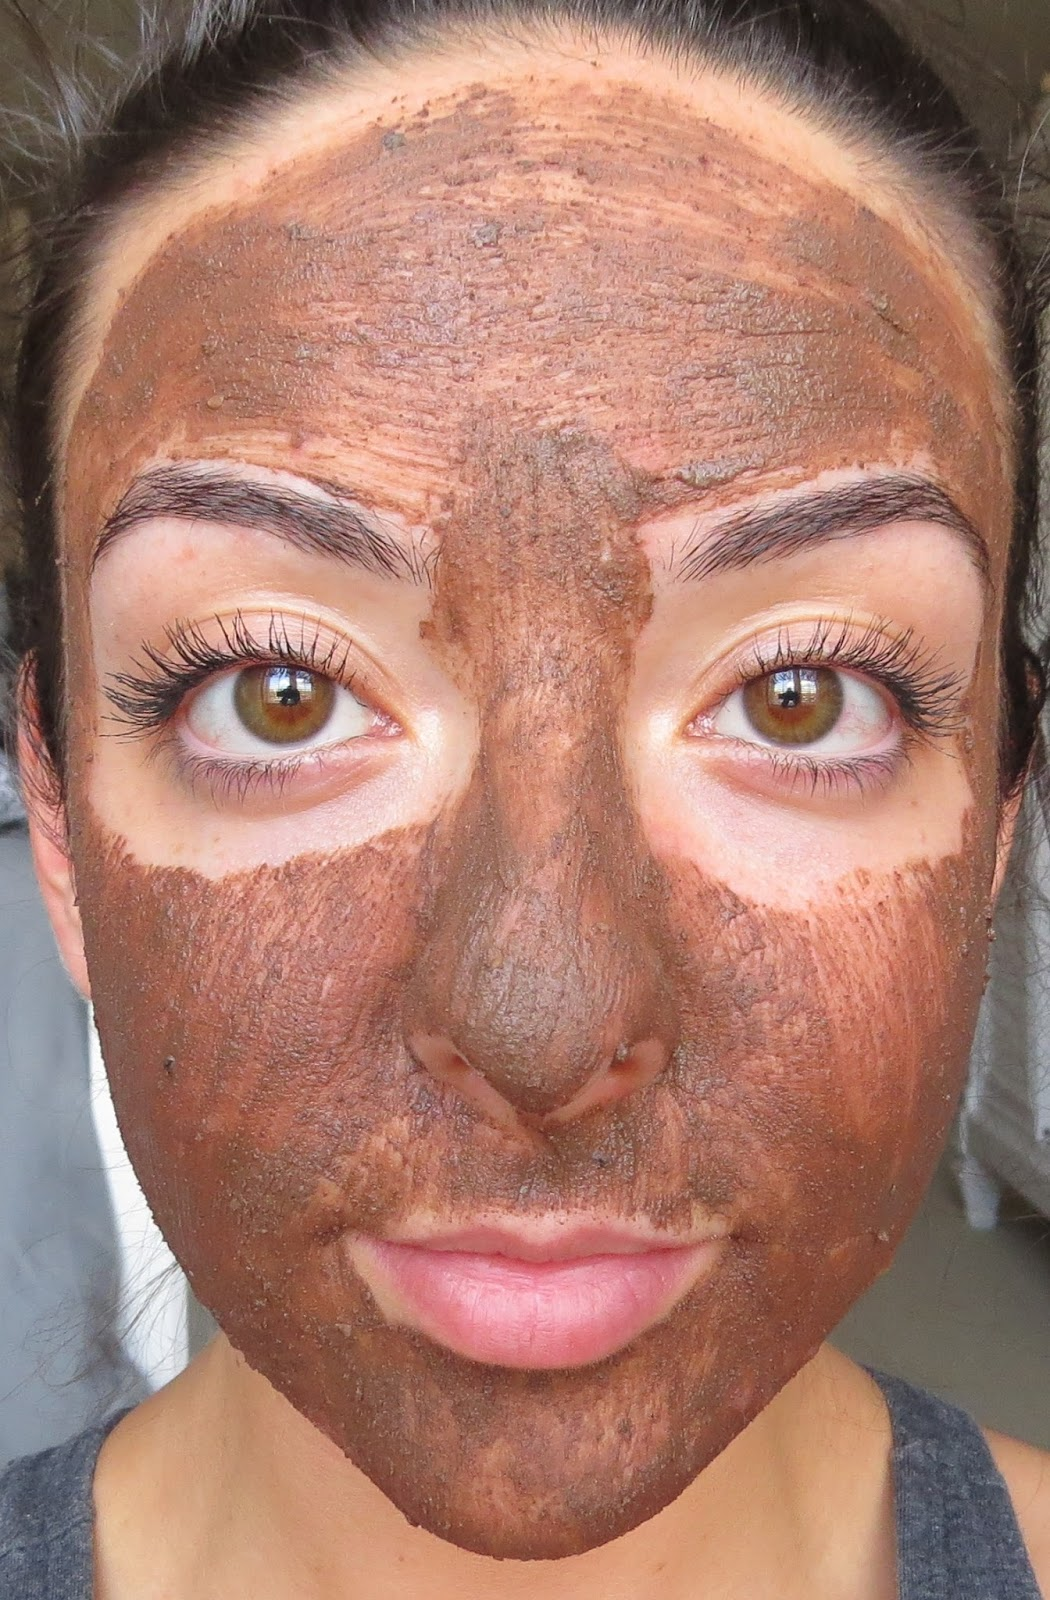 The Pictures Above Show Cupcake Fresh Face Mask Freshly Applied To My Clean Skin As You Can See Texture Is Quick Thin And Colour An Opaque